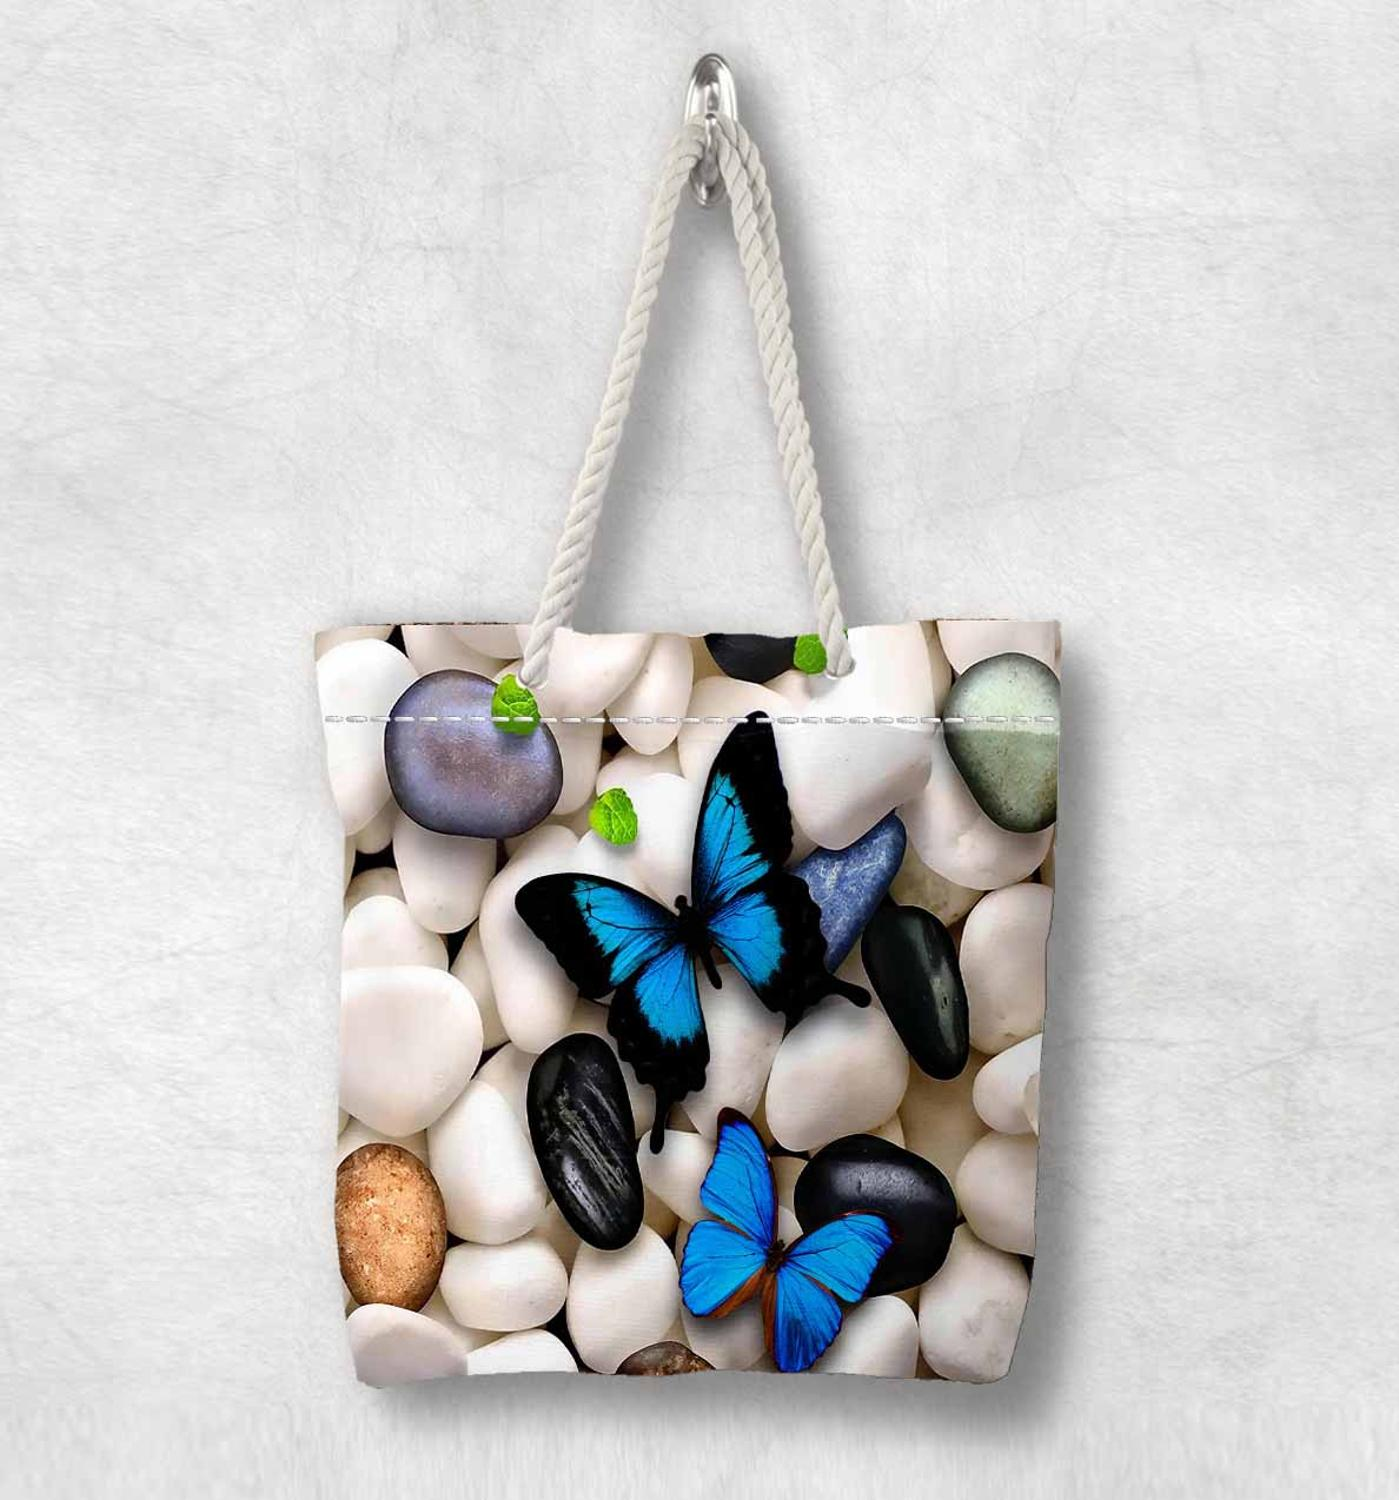 Else White Pebble Stones On Blue Butterfly New Fashion White Rope Handle Canvas Bag Cotton Canvas Zippered Tote Bag Shoulder Bag